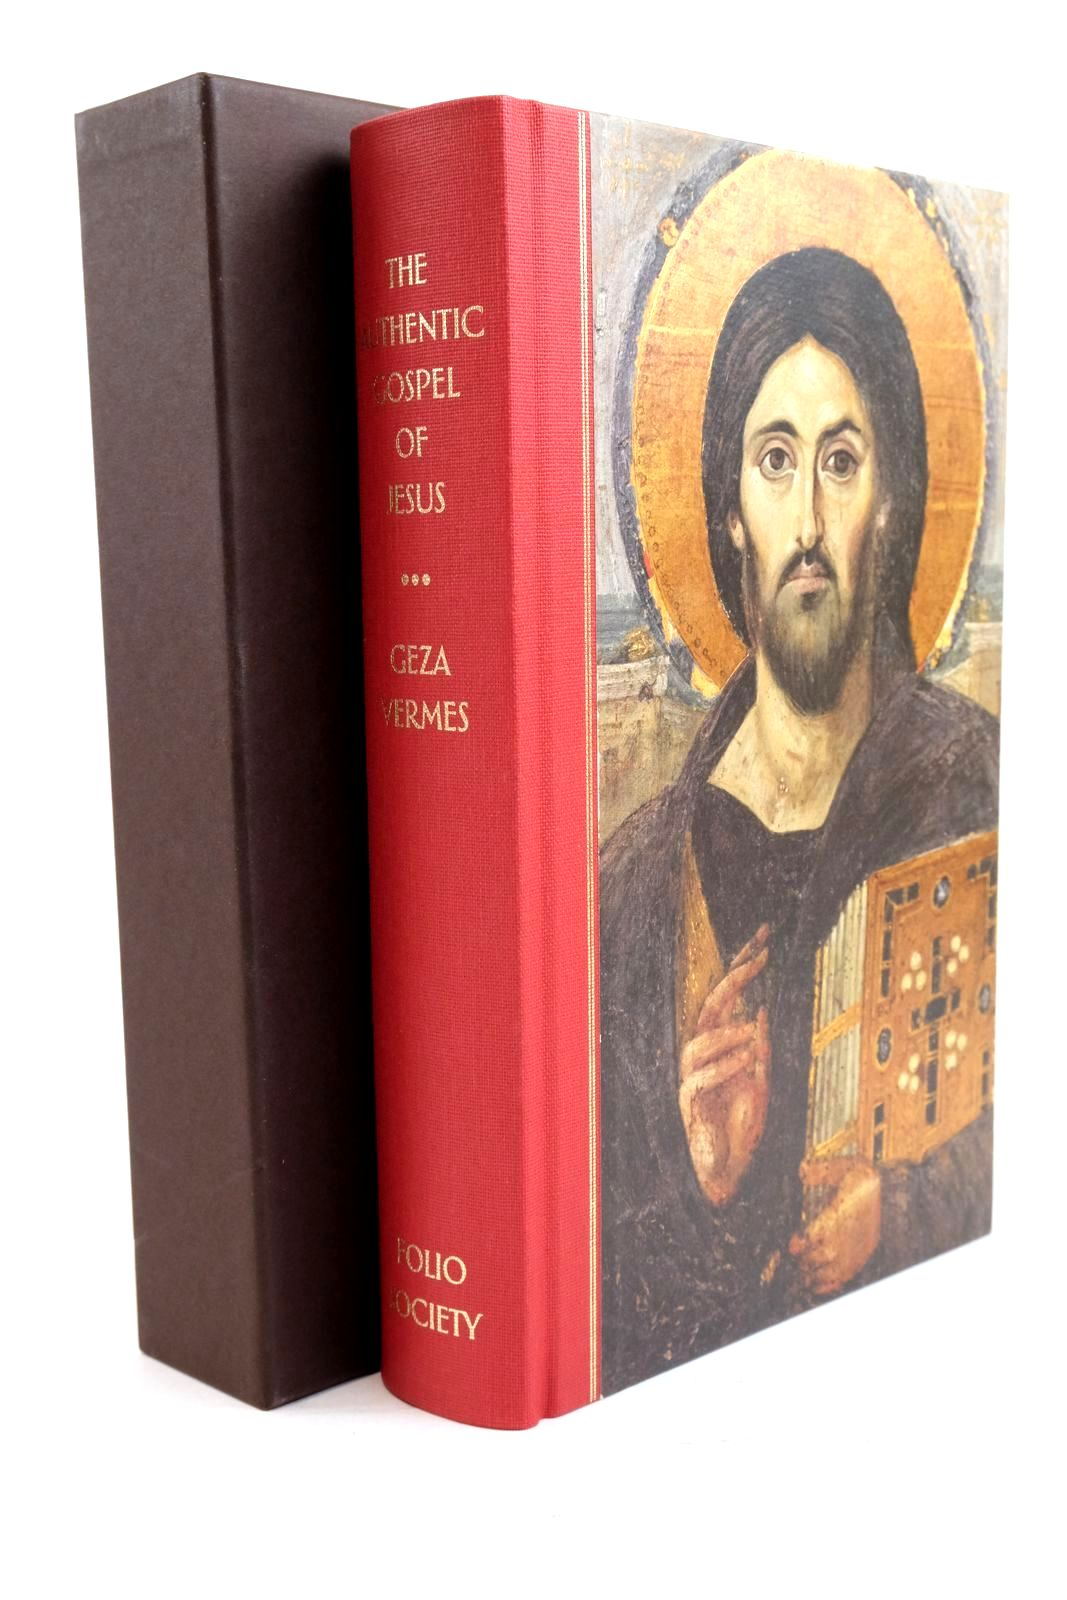 Photo of THE  AUTHENTIC GOSPEL OF JESUS written by Vermes, Geza published by Folio Society (STOCK CODE: 1320842)  for sale by Stella & Rose's Books